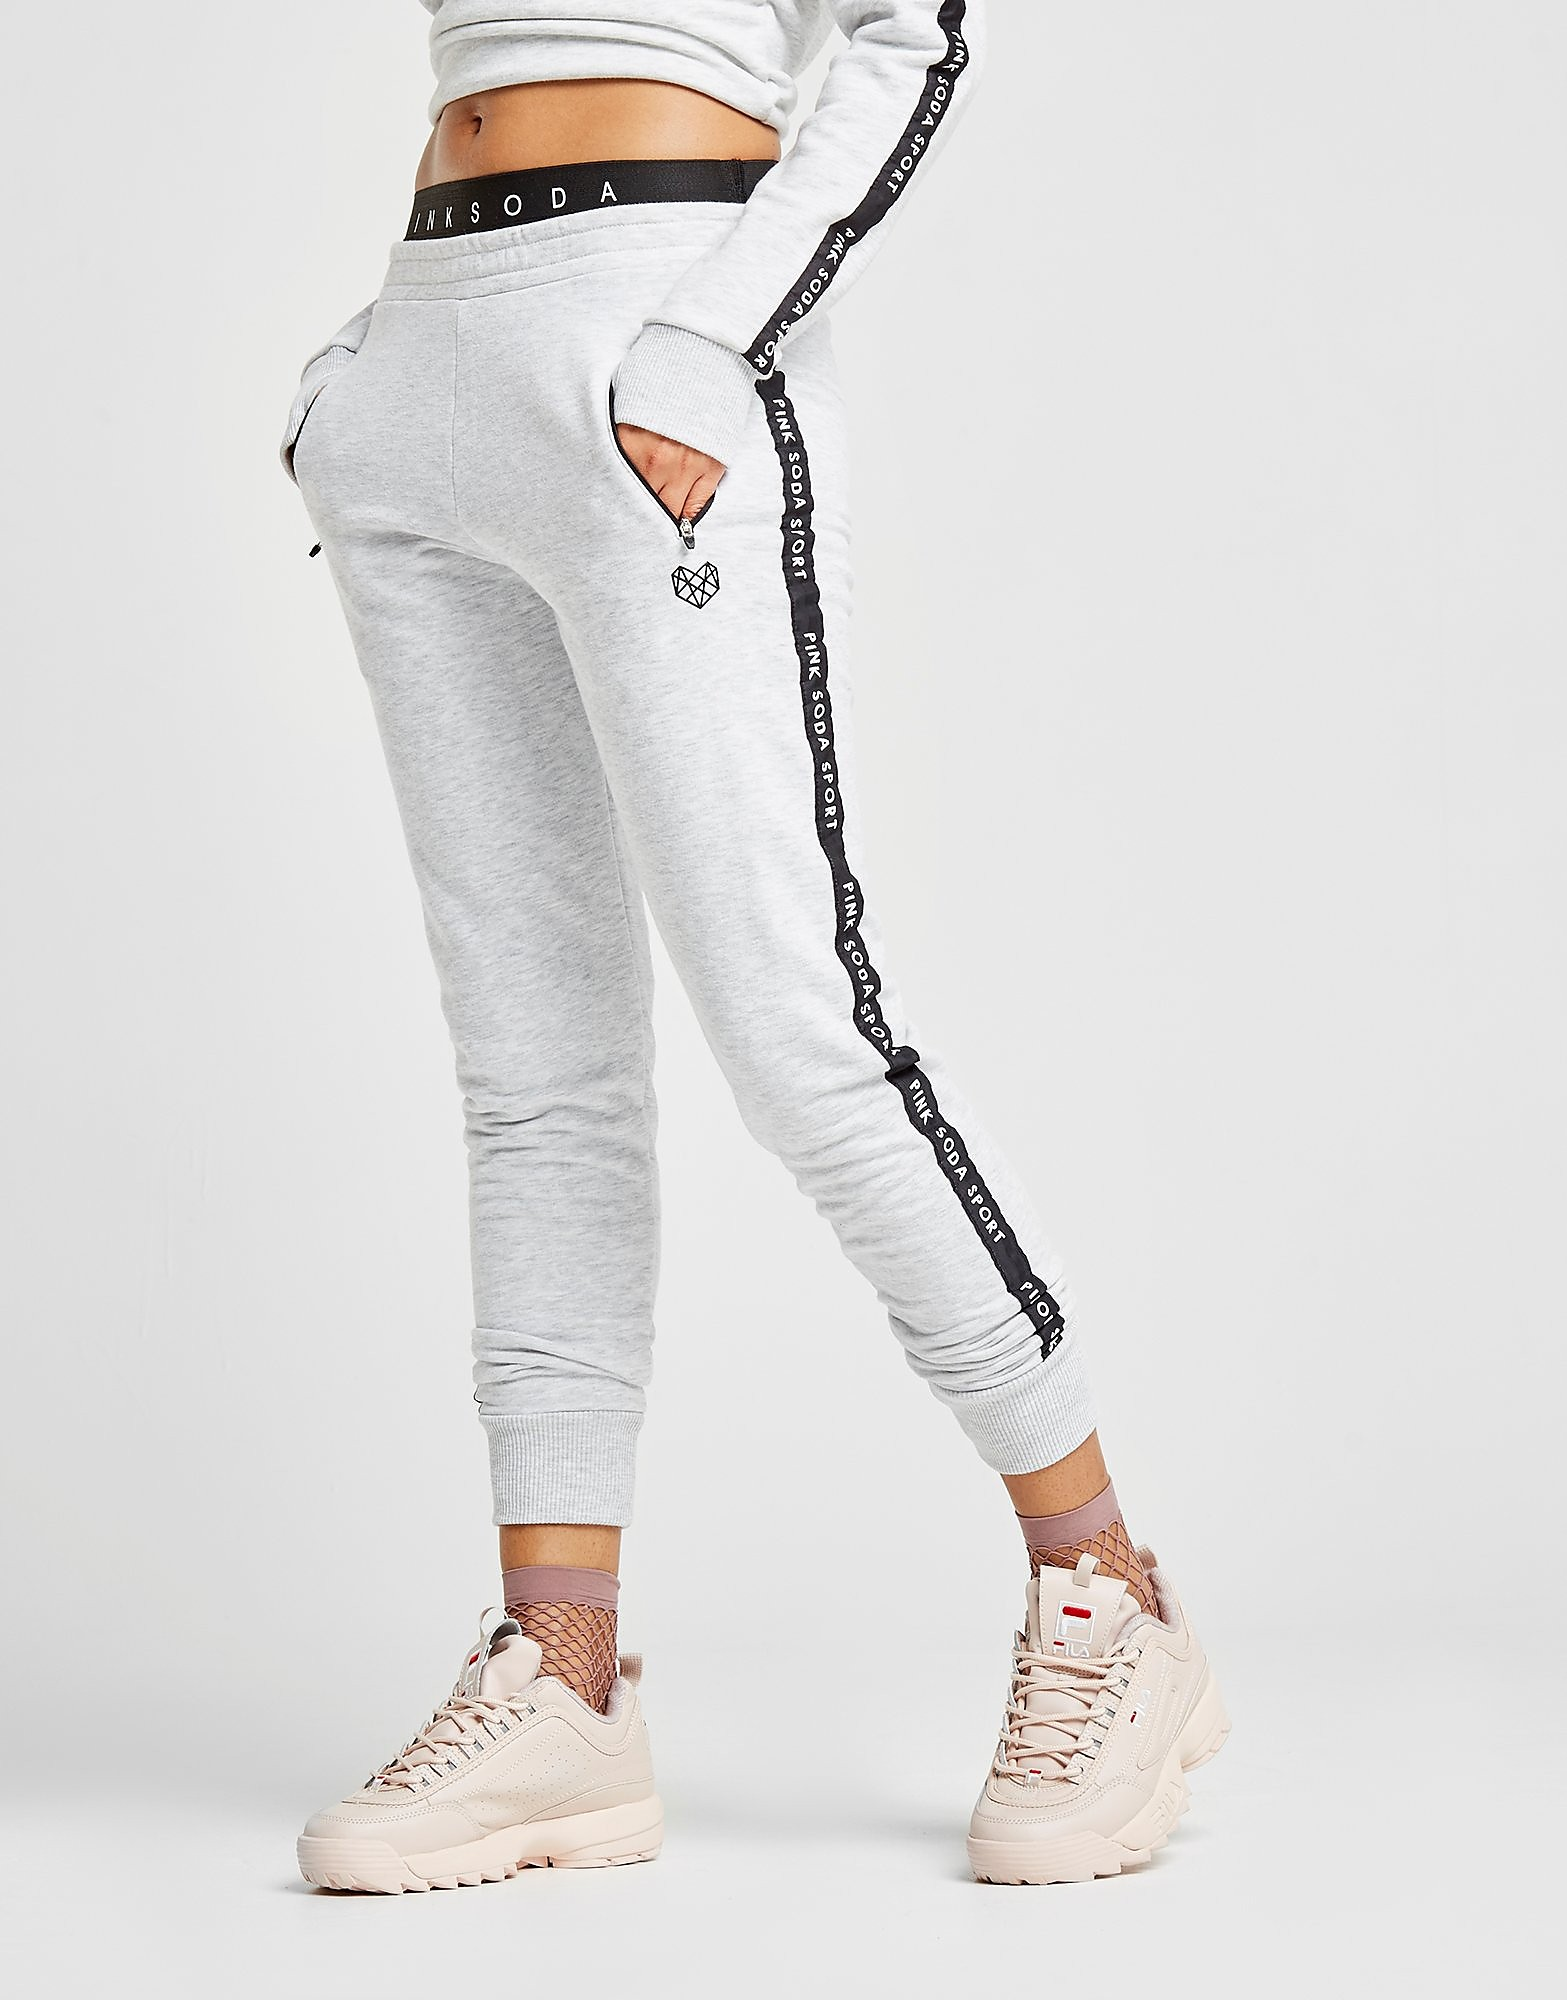 Pink Soda Sport Tape Graphic Joggers